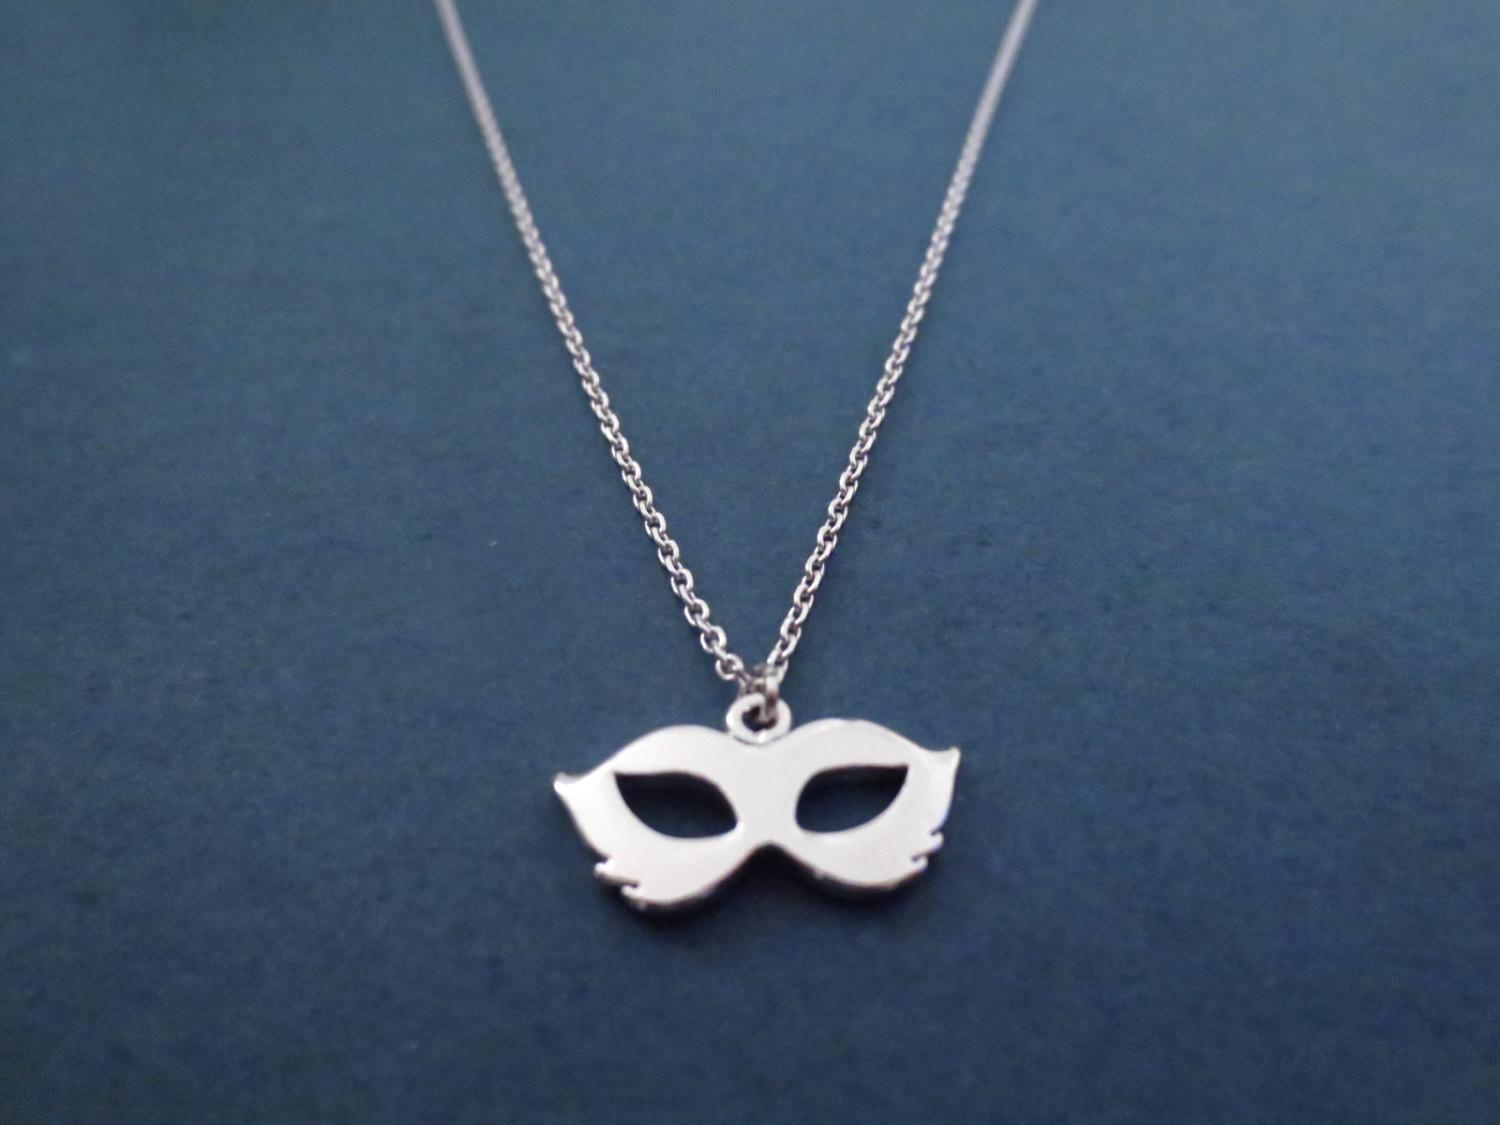 Cute Mask Silver Necklace Modern Dainty Minimal